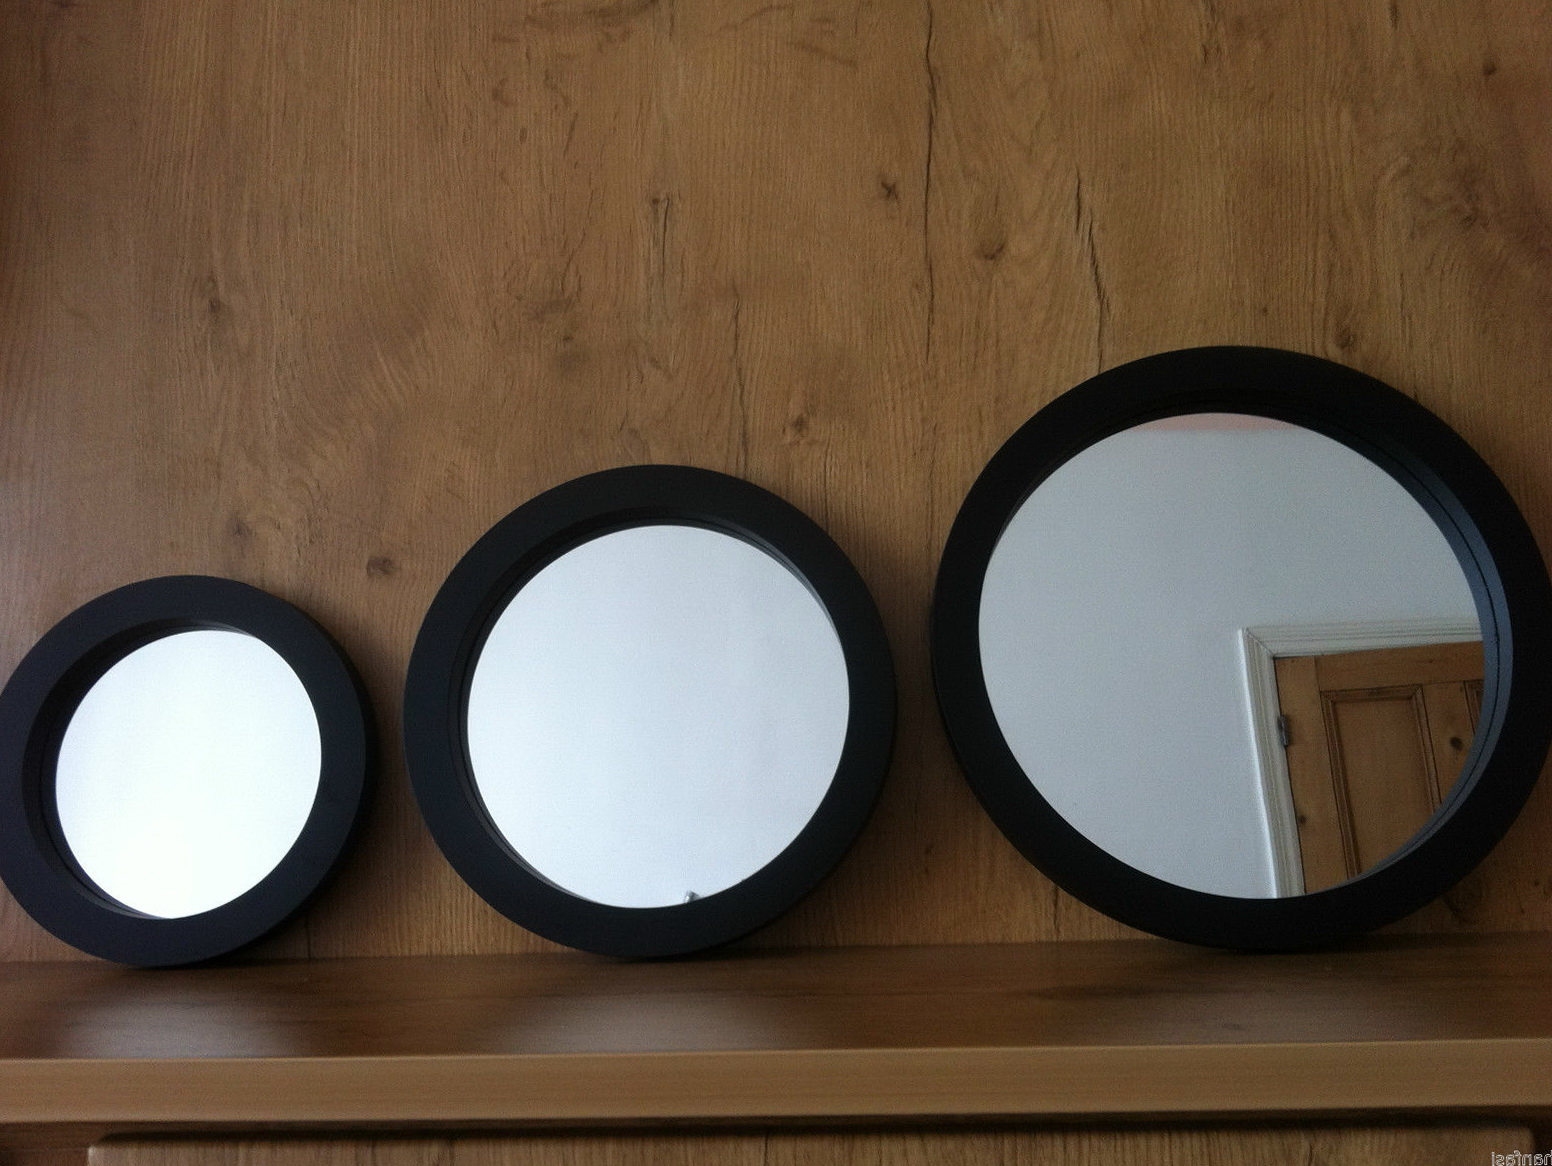 Set Of 3 Round Wall Mirrors Home Design Ideas